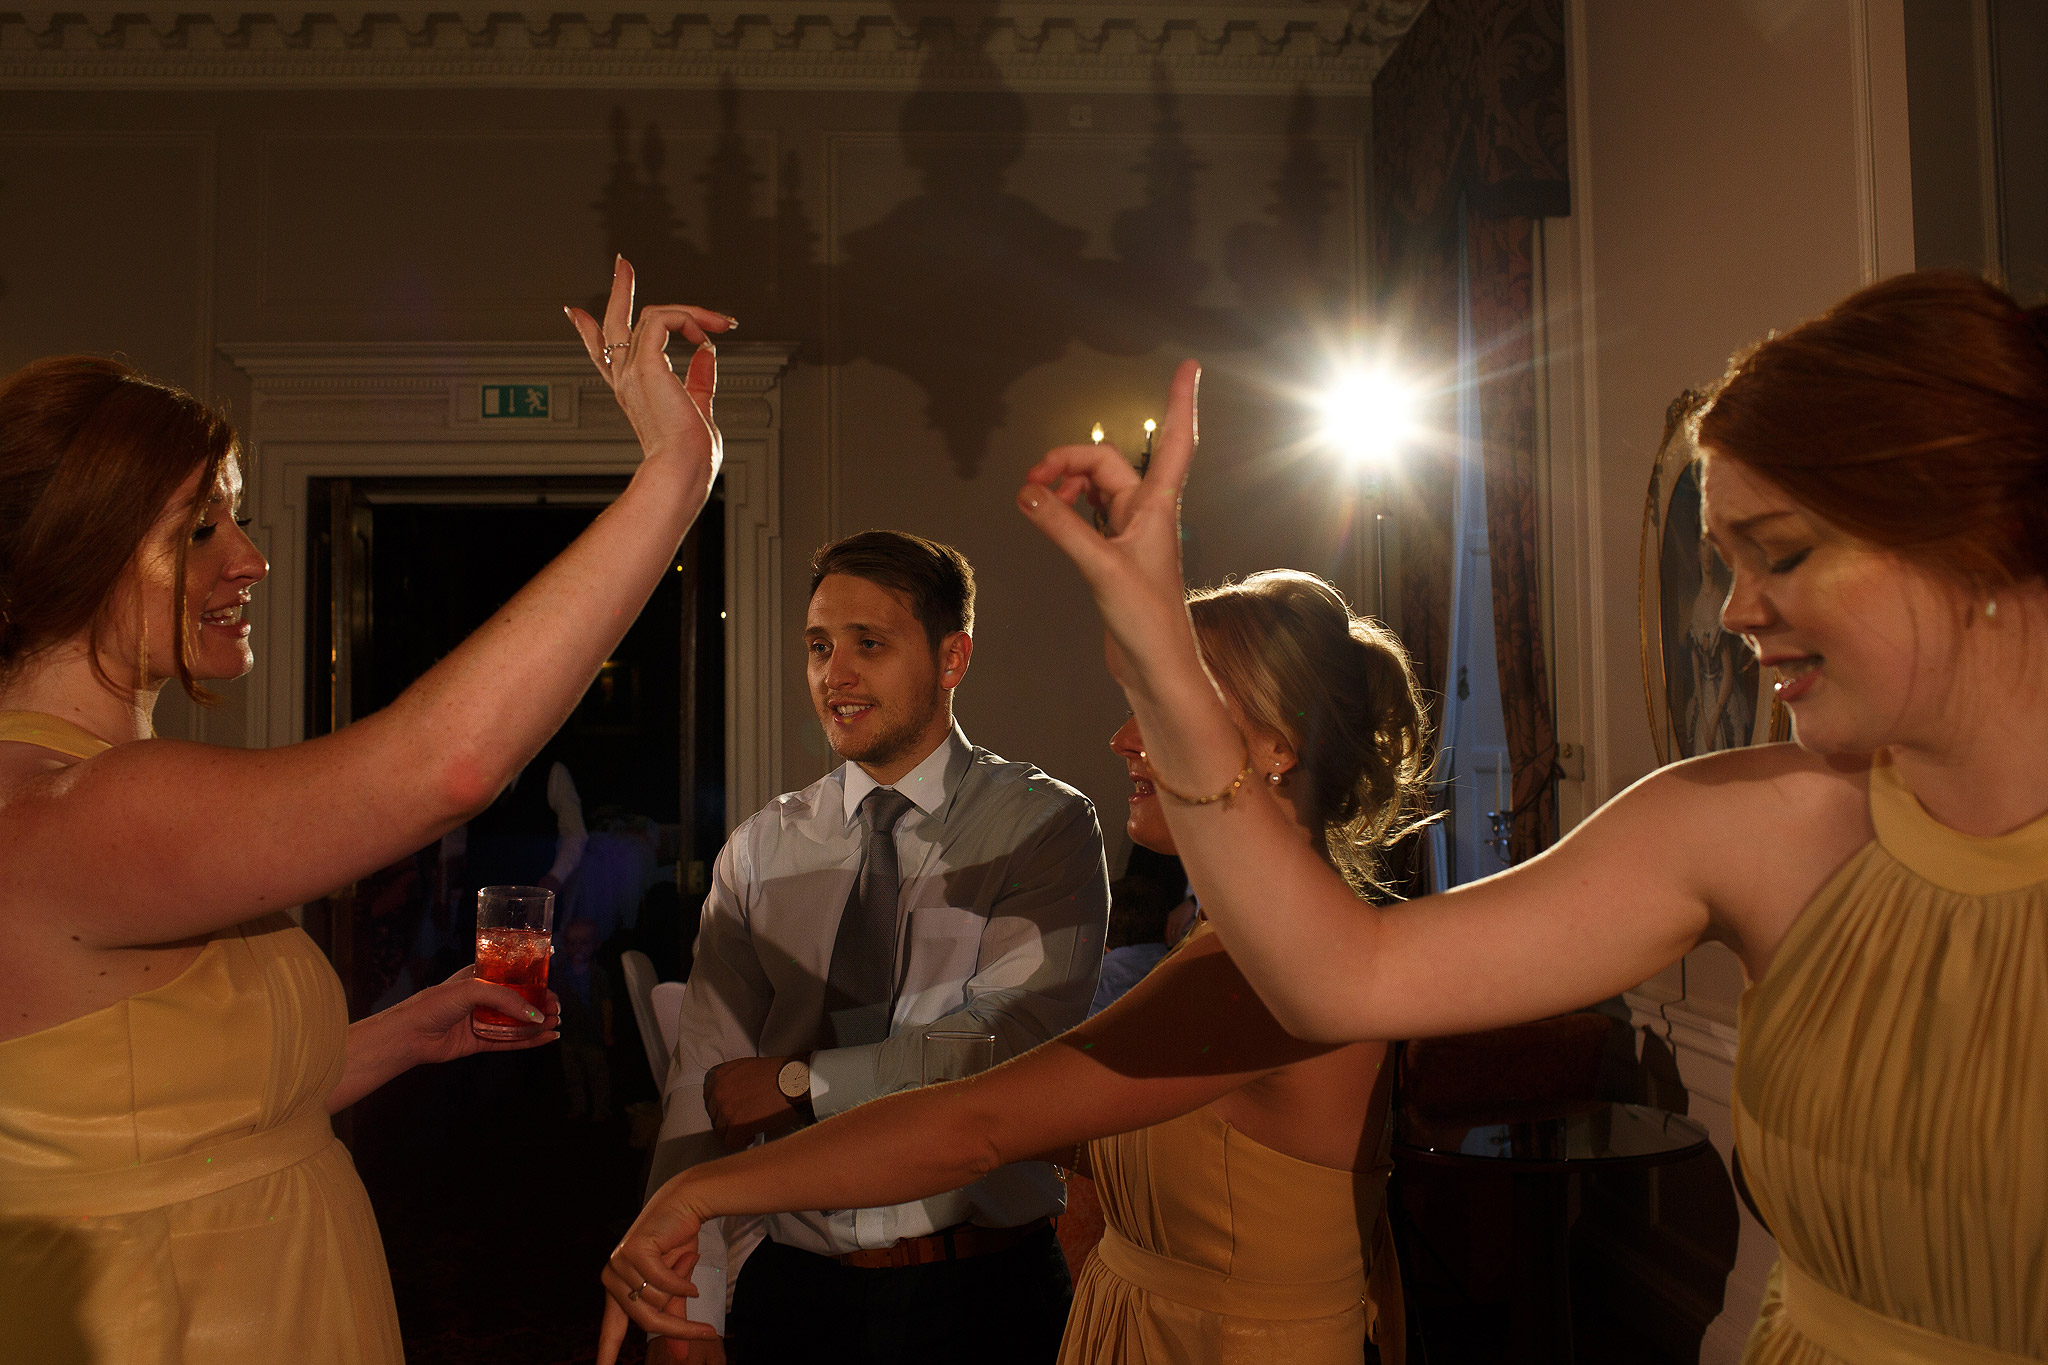 Guests dancing at wedding reception at Crathorne Hall